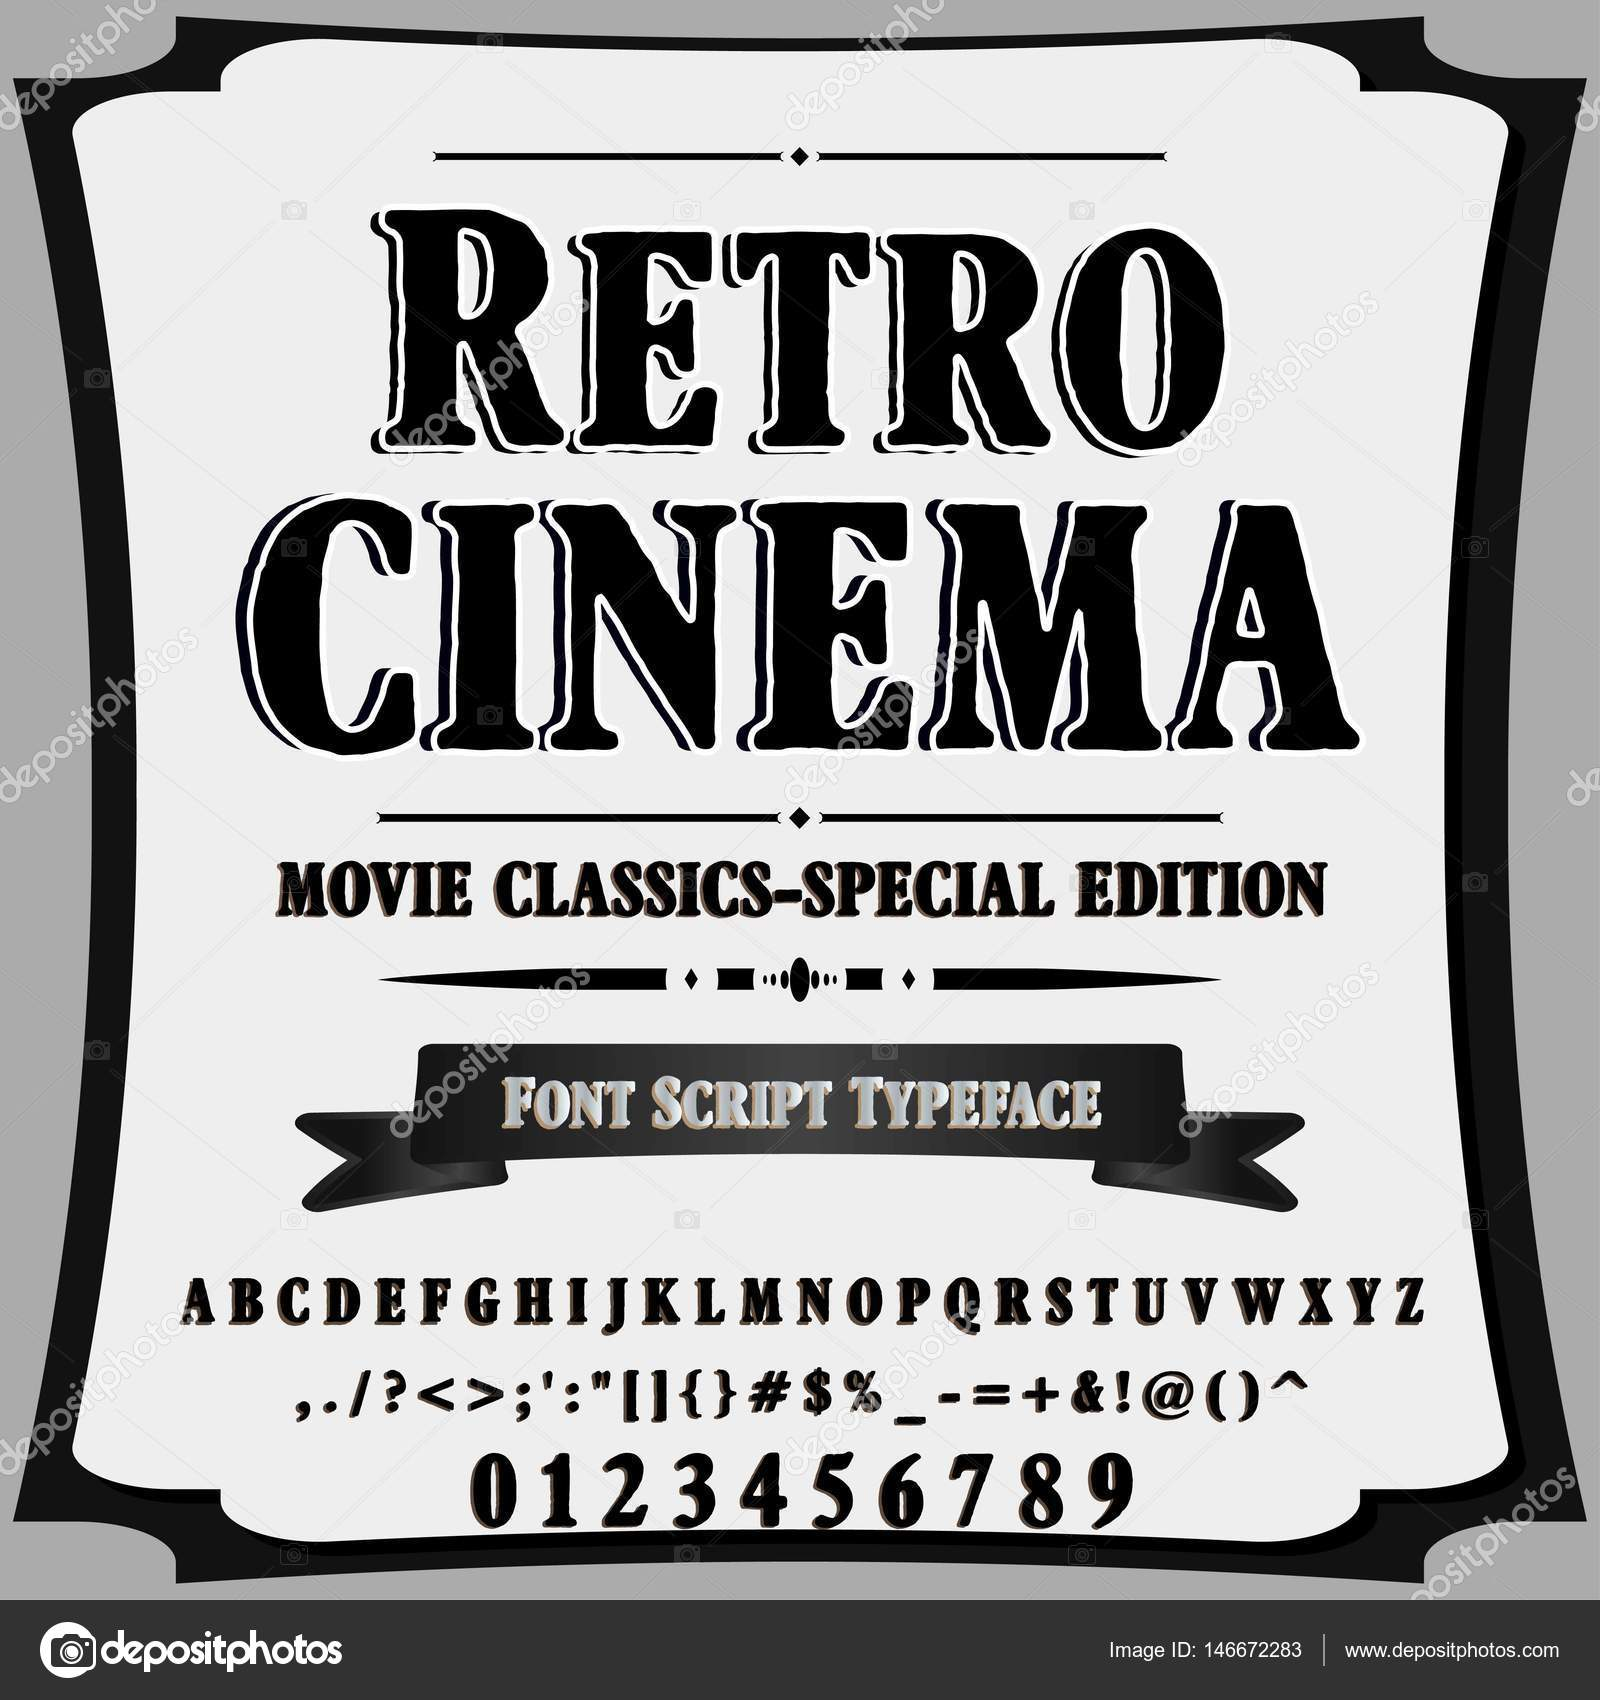 Script Font Typeface Retro Cinema Vintage Script Font Vector Typeface For Labels And Any Type Designs Stock Vector C Elnara Balayeva 146672283